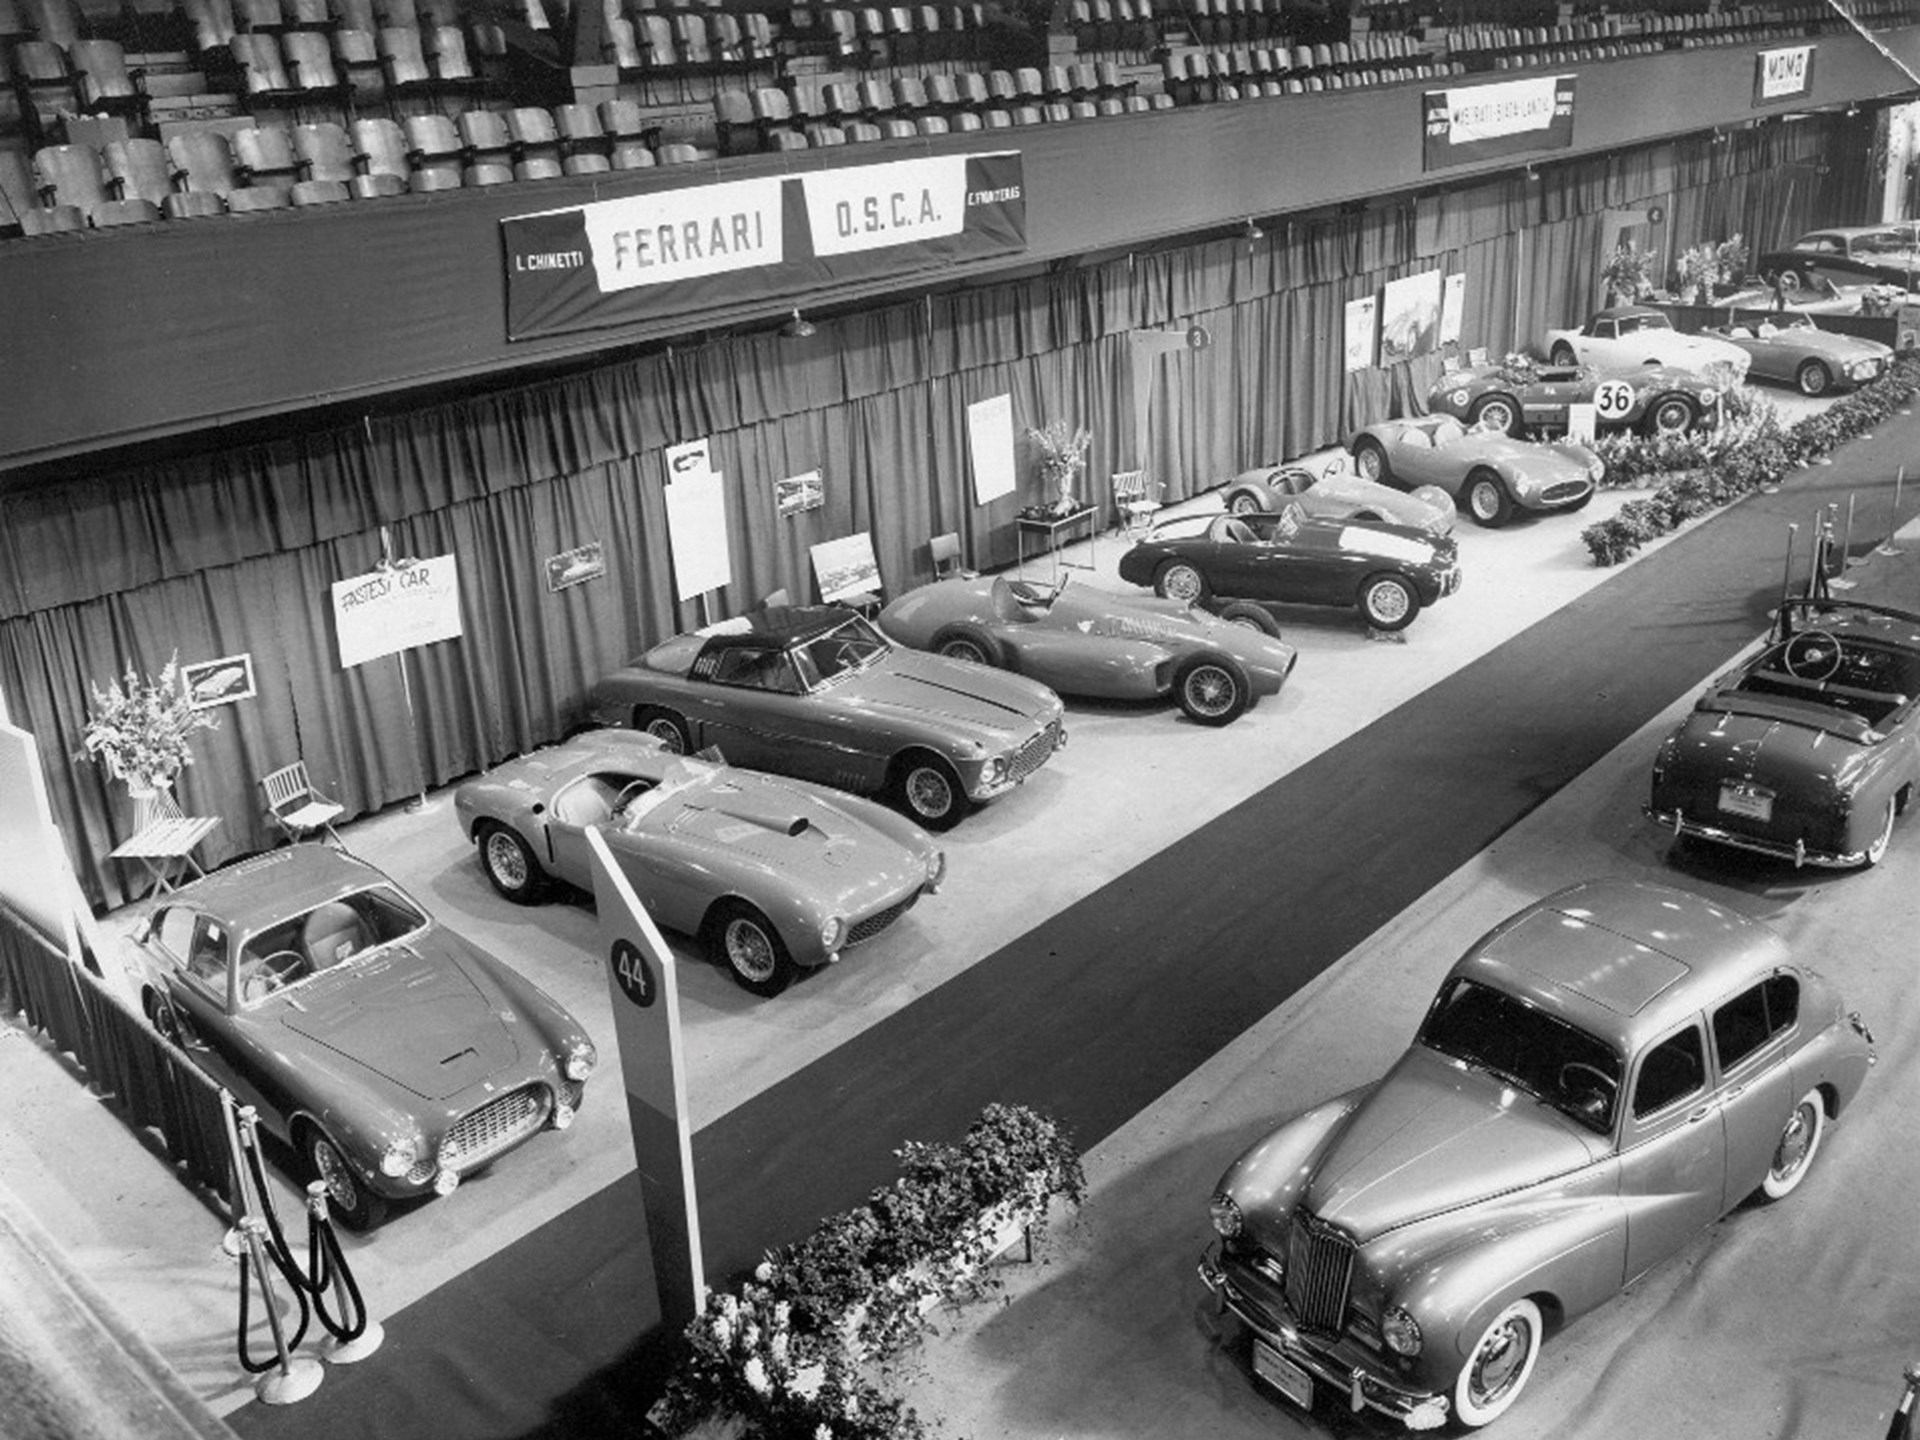 1954 World Motor Sports Show in New York.